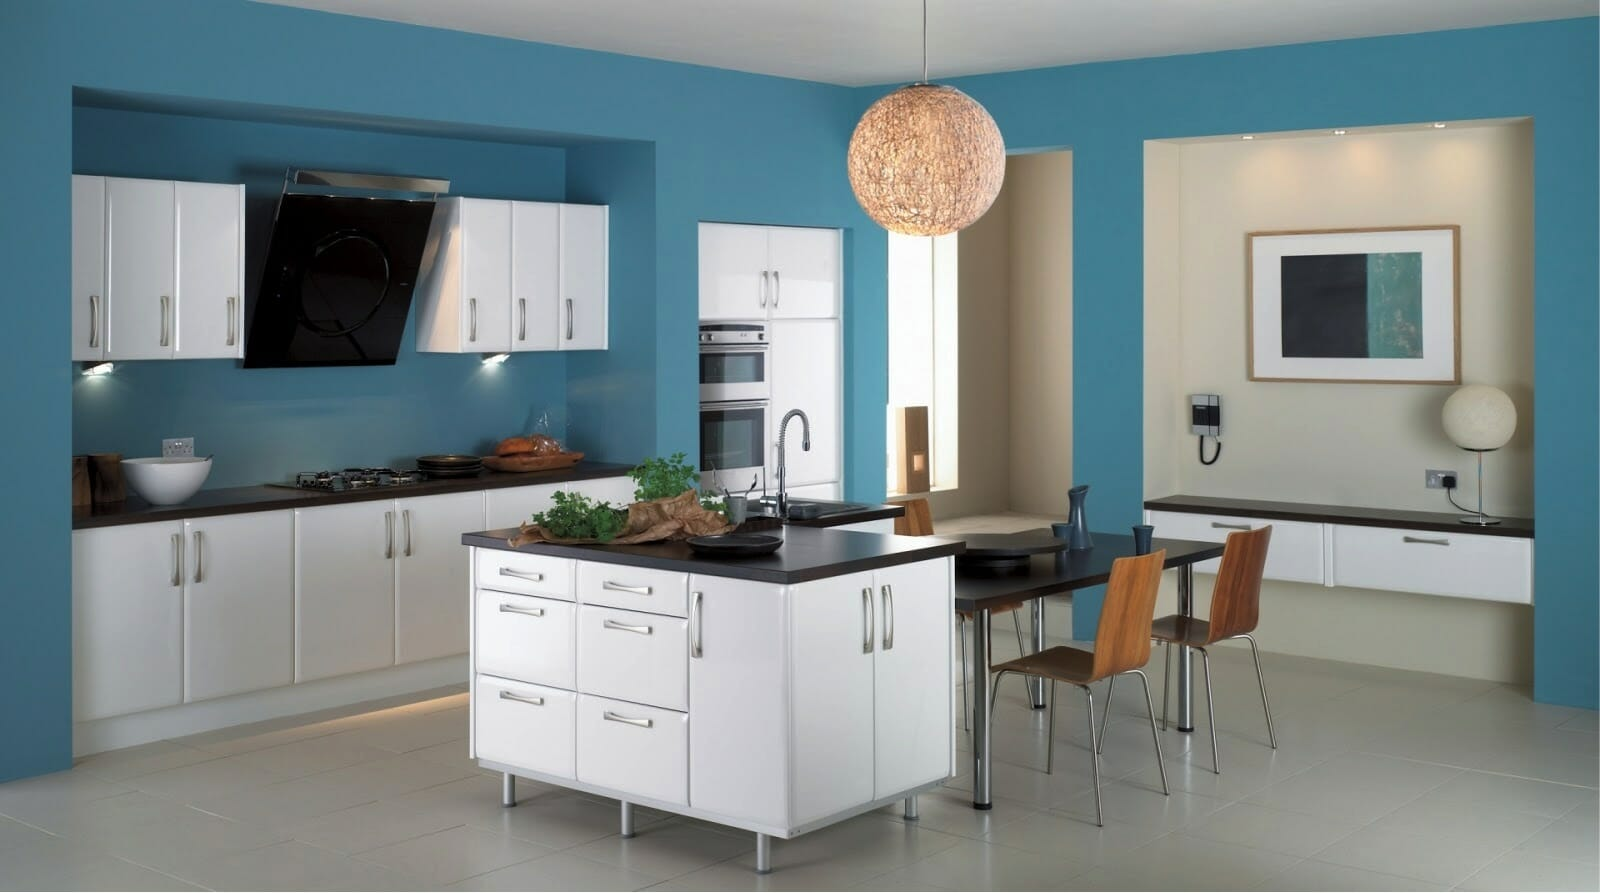 Gallery Image Of Best Type Of Paint For Kitchen Cabinets